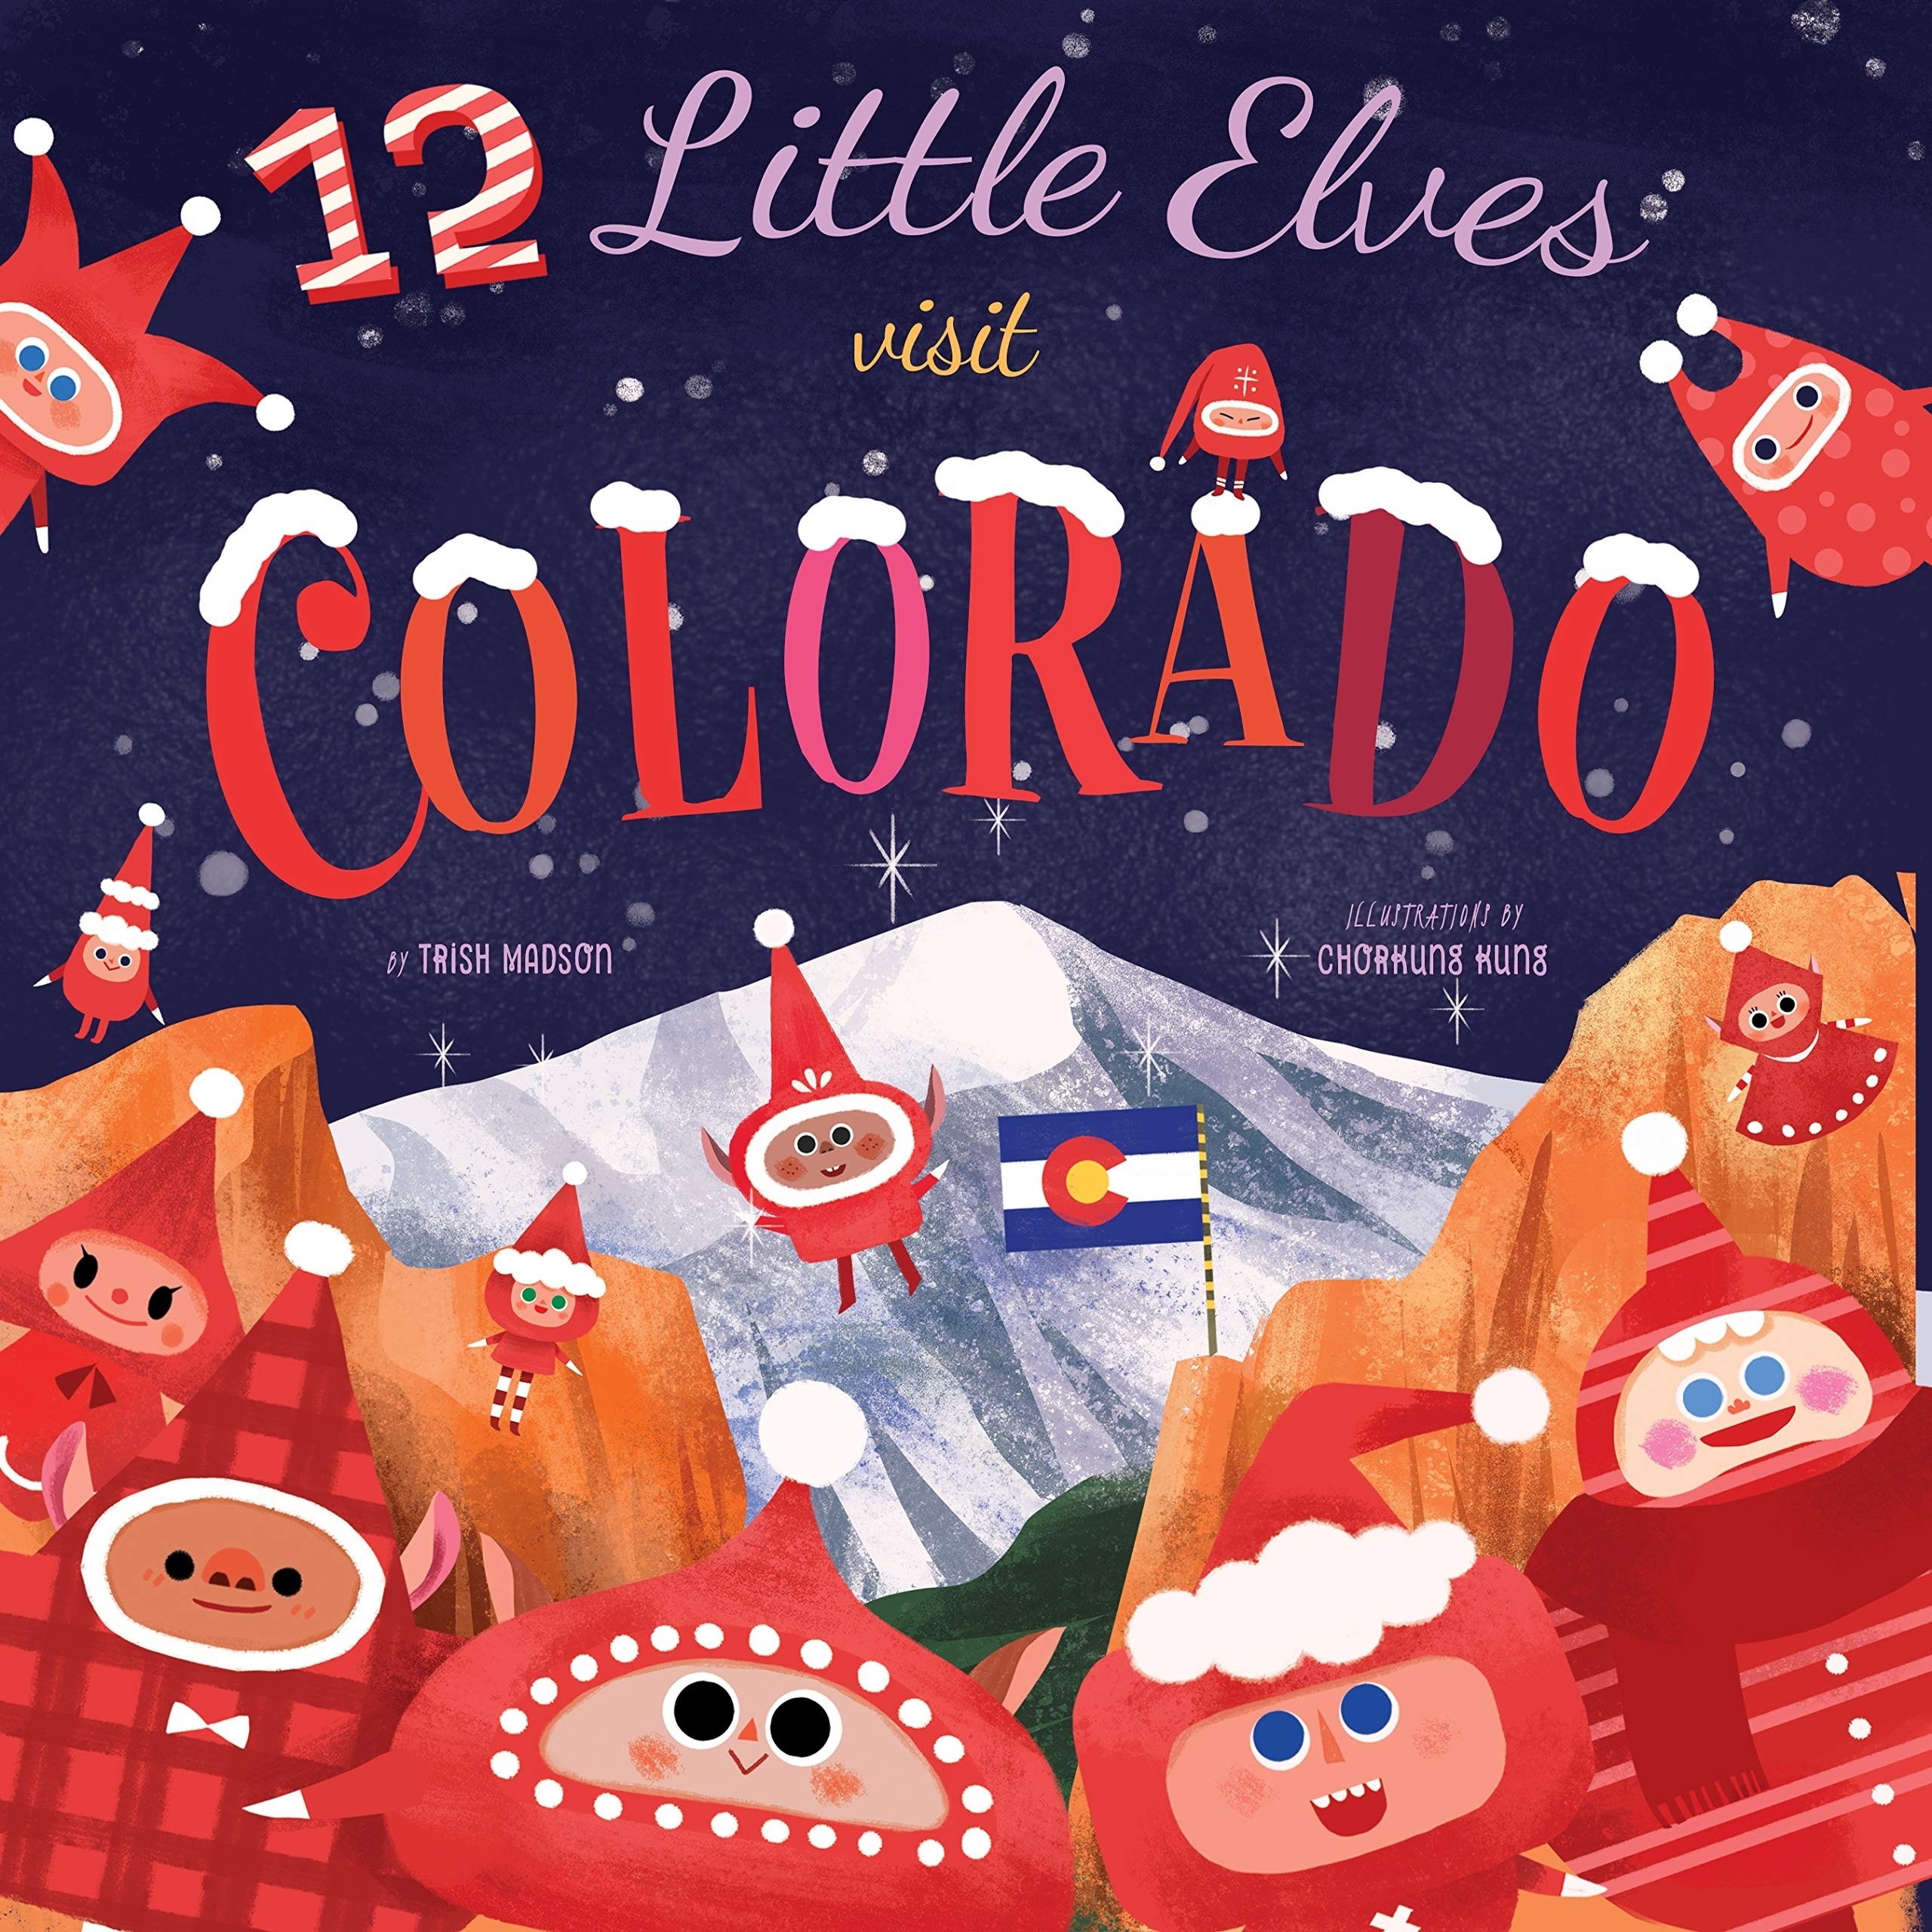 12 Little Elves Visit Colorado